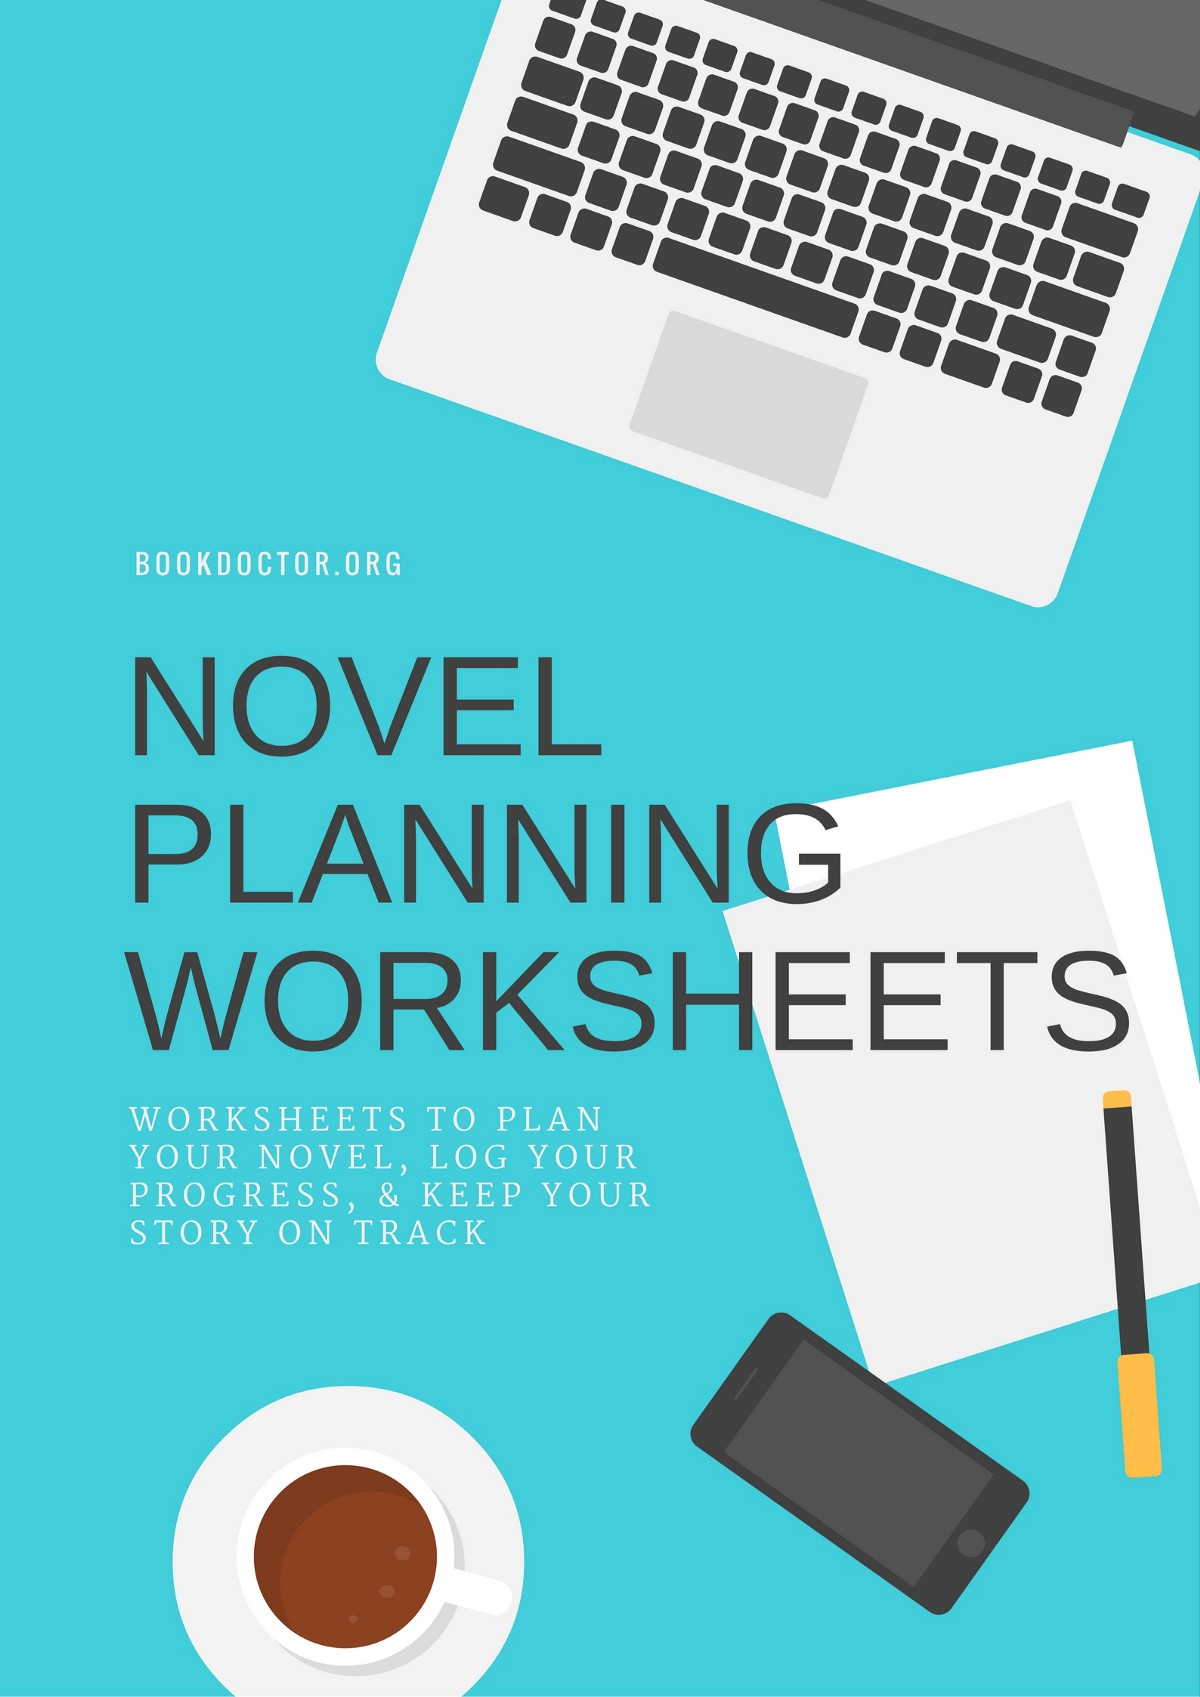 Writing a novel? There's a worksheet for that!